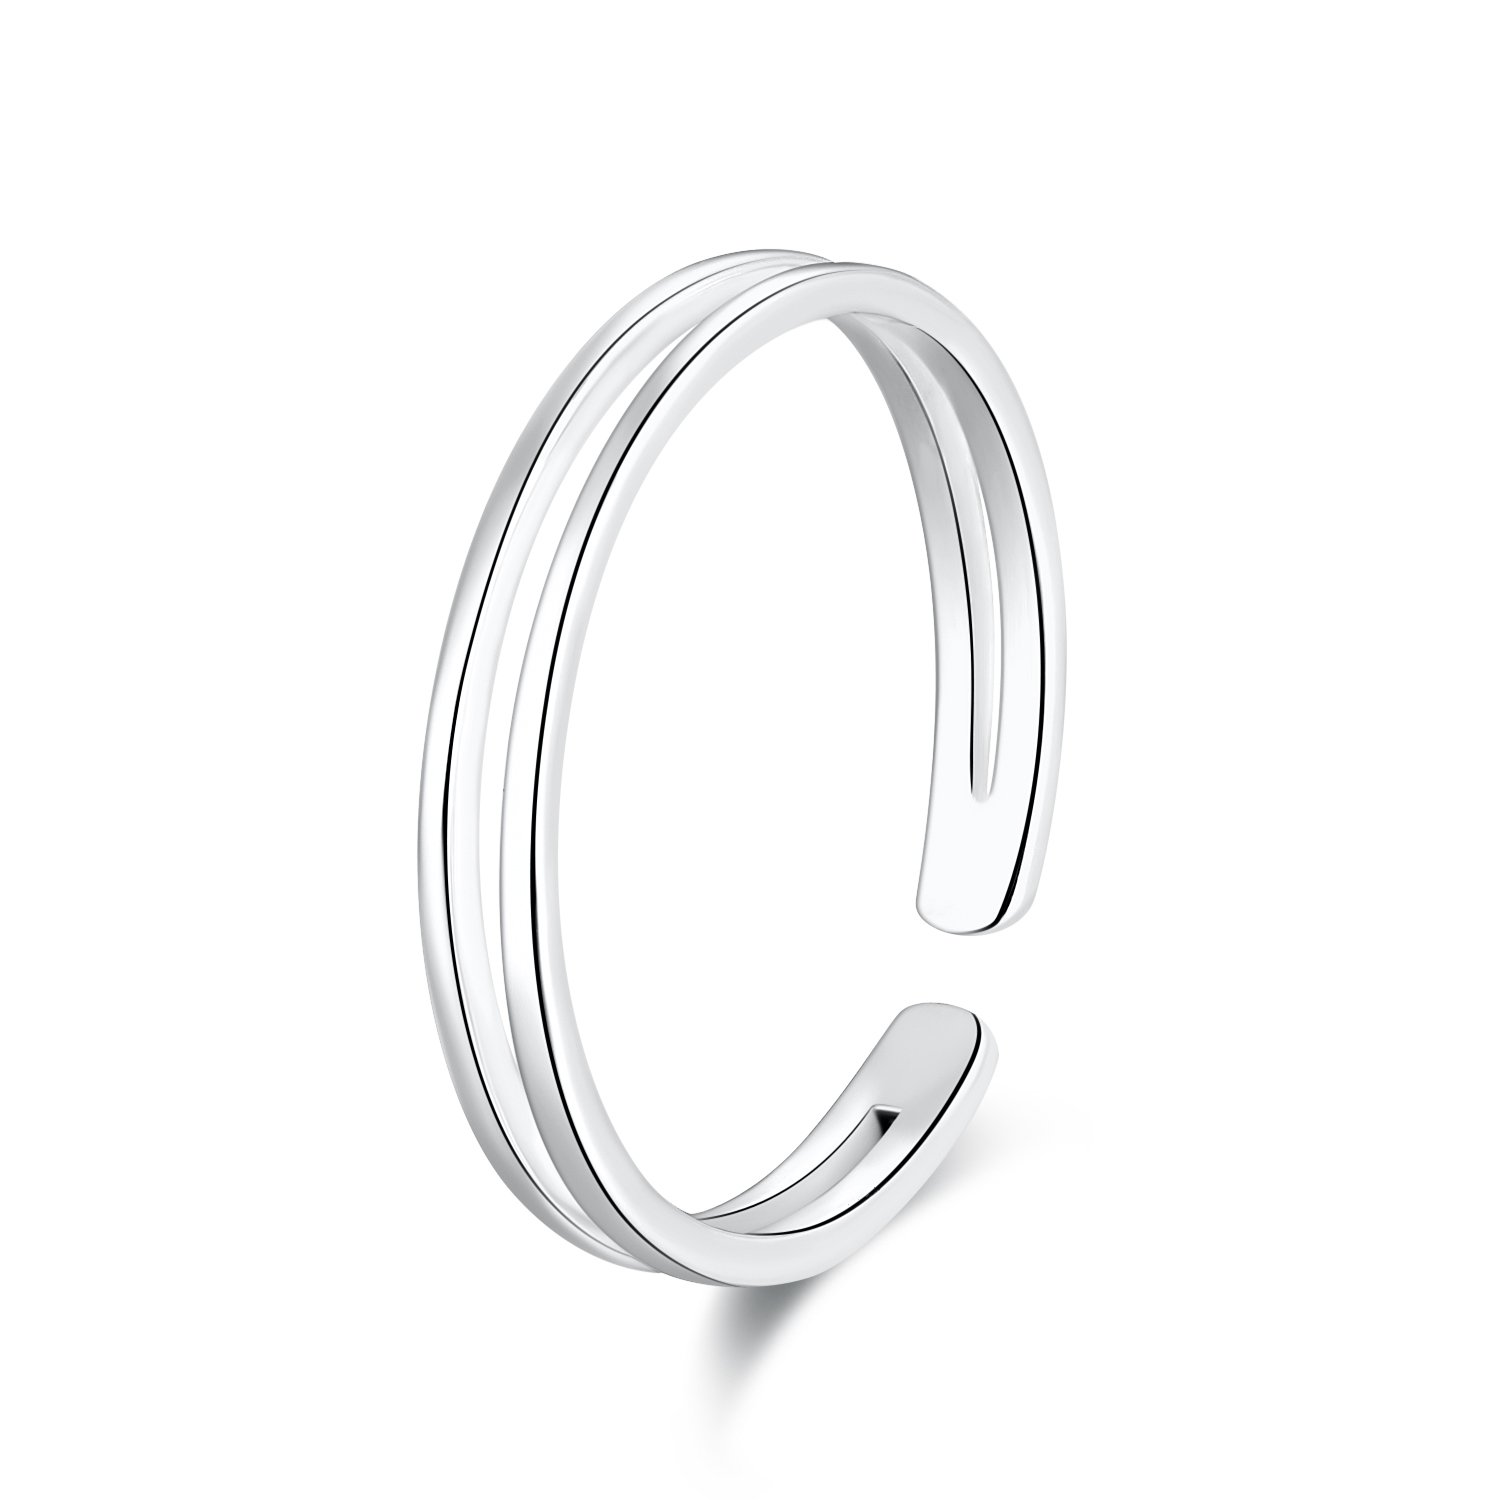 SILBERTALE 925 Sterling Silver Thin Line Minimalist Open Cuff Toe Ring Band for Women Size 2-4